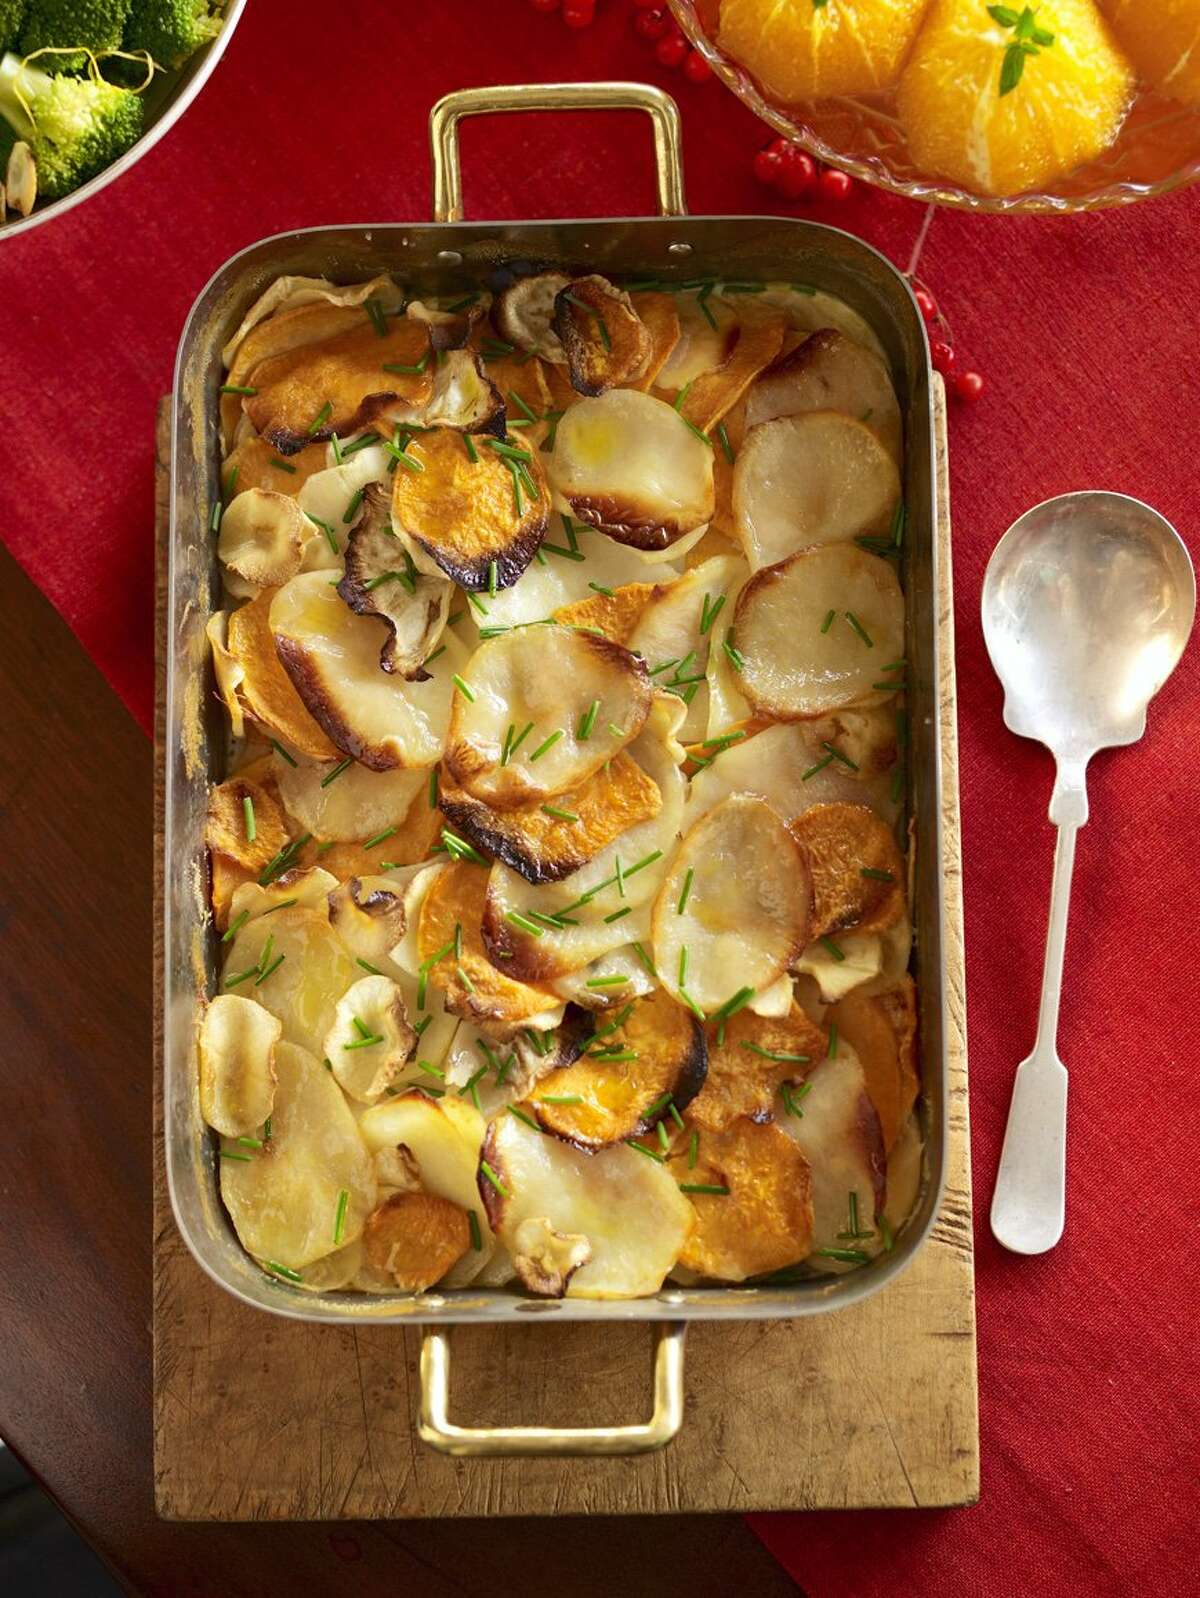 Good Housekeeping recipe for Potato and Root Vegetable Gratin.